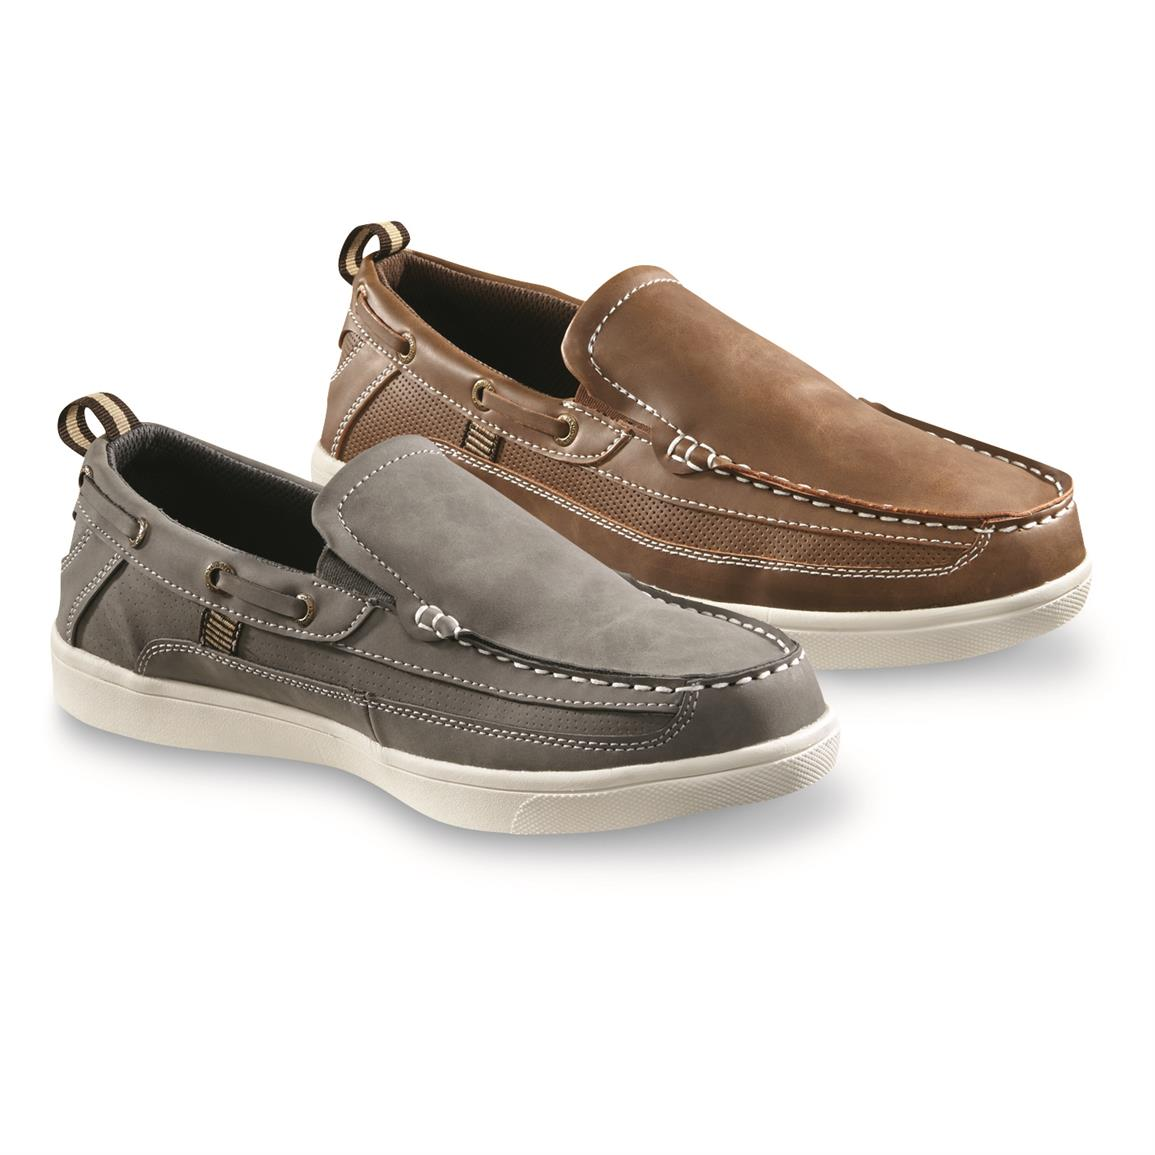 Hang Ten Men's Pier Slip-On Boat Shoes